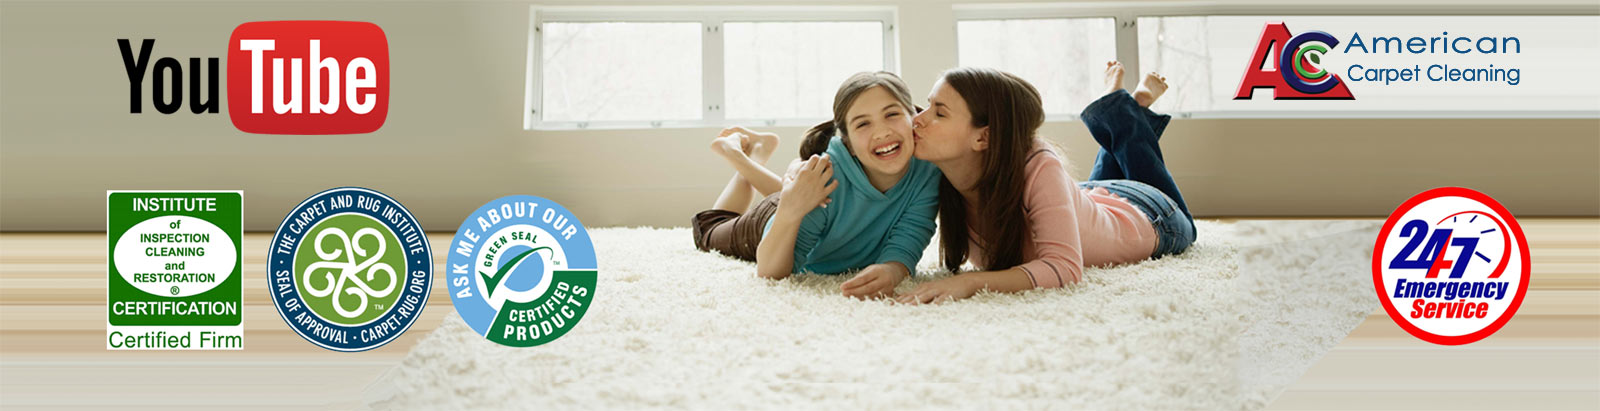 Visit American Carpet Cleaning YouTube Channel for more Carpet Cleaning in Valley Glen | Carpet Cleaning Service in Valley Glen | FREE Carpet Cleaning Quote in Valley Glen, CA | Carpet Cleaning Service in Valley Glen, CA | Carpet Cleaning in Valley Glen, CA | Valley Glen Carpet Cleaning | Carpet Cleaning Service in Thousand Oaks, CA | Carpet Cleaning Service in Simi Valley, CA | Carpet Cleaning Service in San Fernando Valley, CA | Carpet Cleaning Service in Santa Clarita Valley, CA | Carpet Cleaning Service in Ventura, CA | Carpet Cleaning Service in Beverly Hills, CA | Carpet Cleaning Service in Malibu, CA